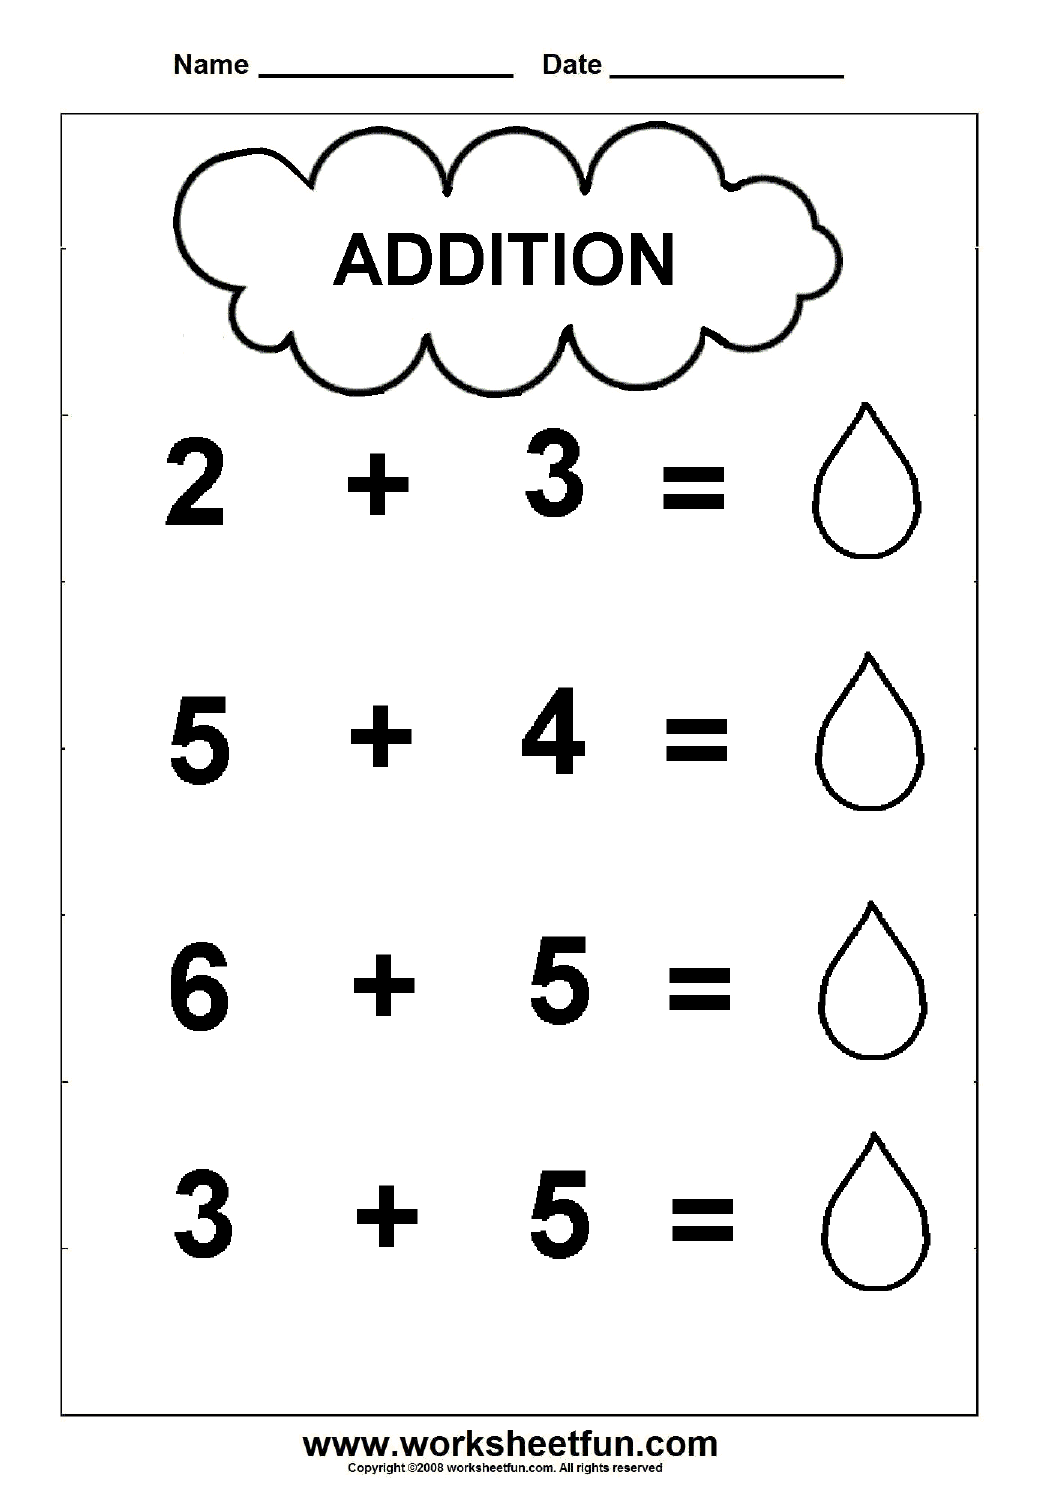 Free Printable Worksheet At Relentlessly Fun Deceptively Educational Description From